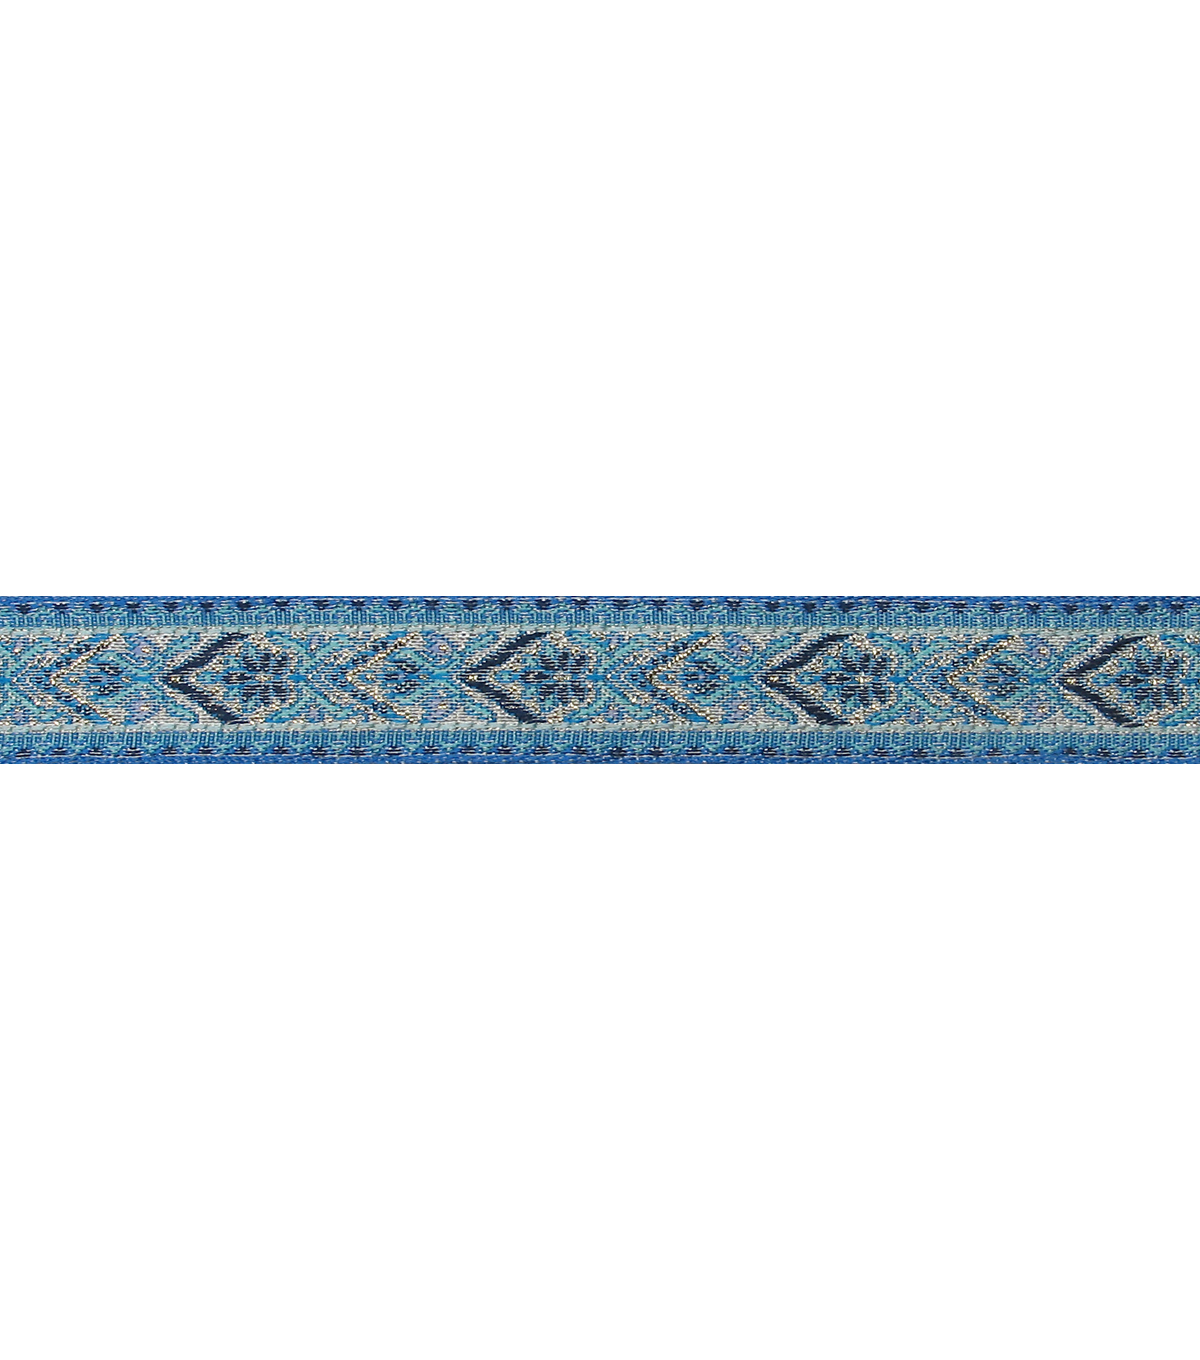 3/4\u0022 Blue Metallic Band Apparel Trim